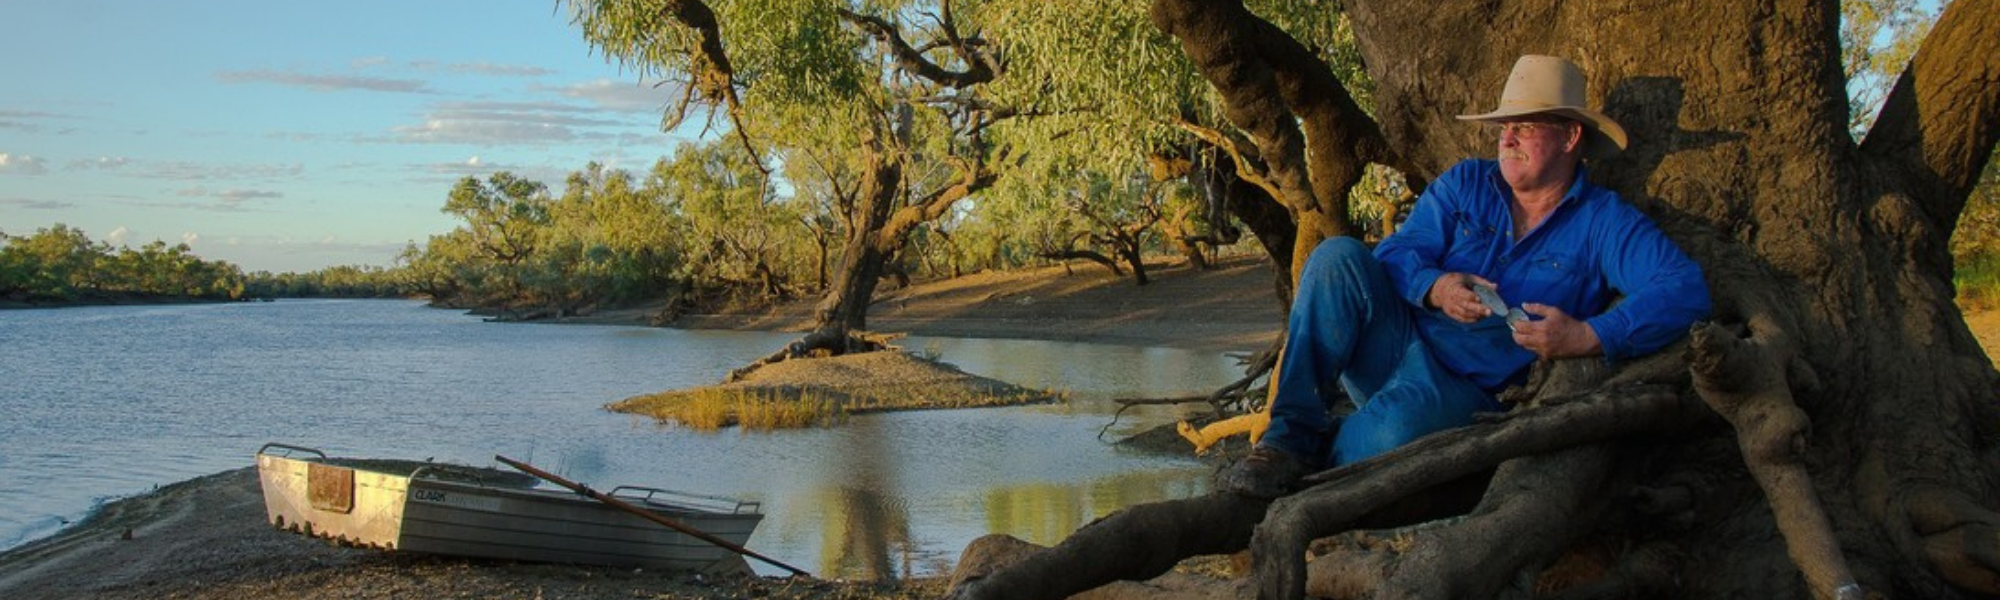 Join the call to protect Channel Country rivers and floodplains